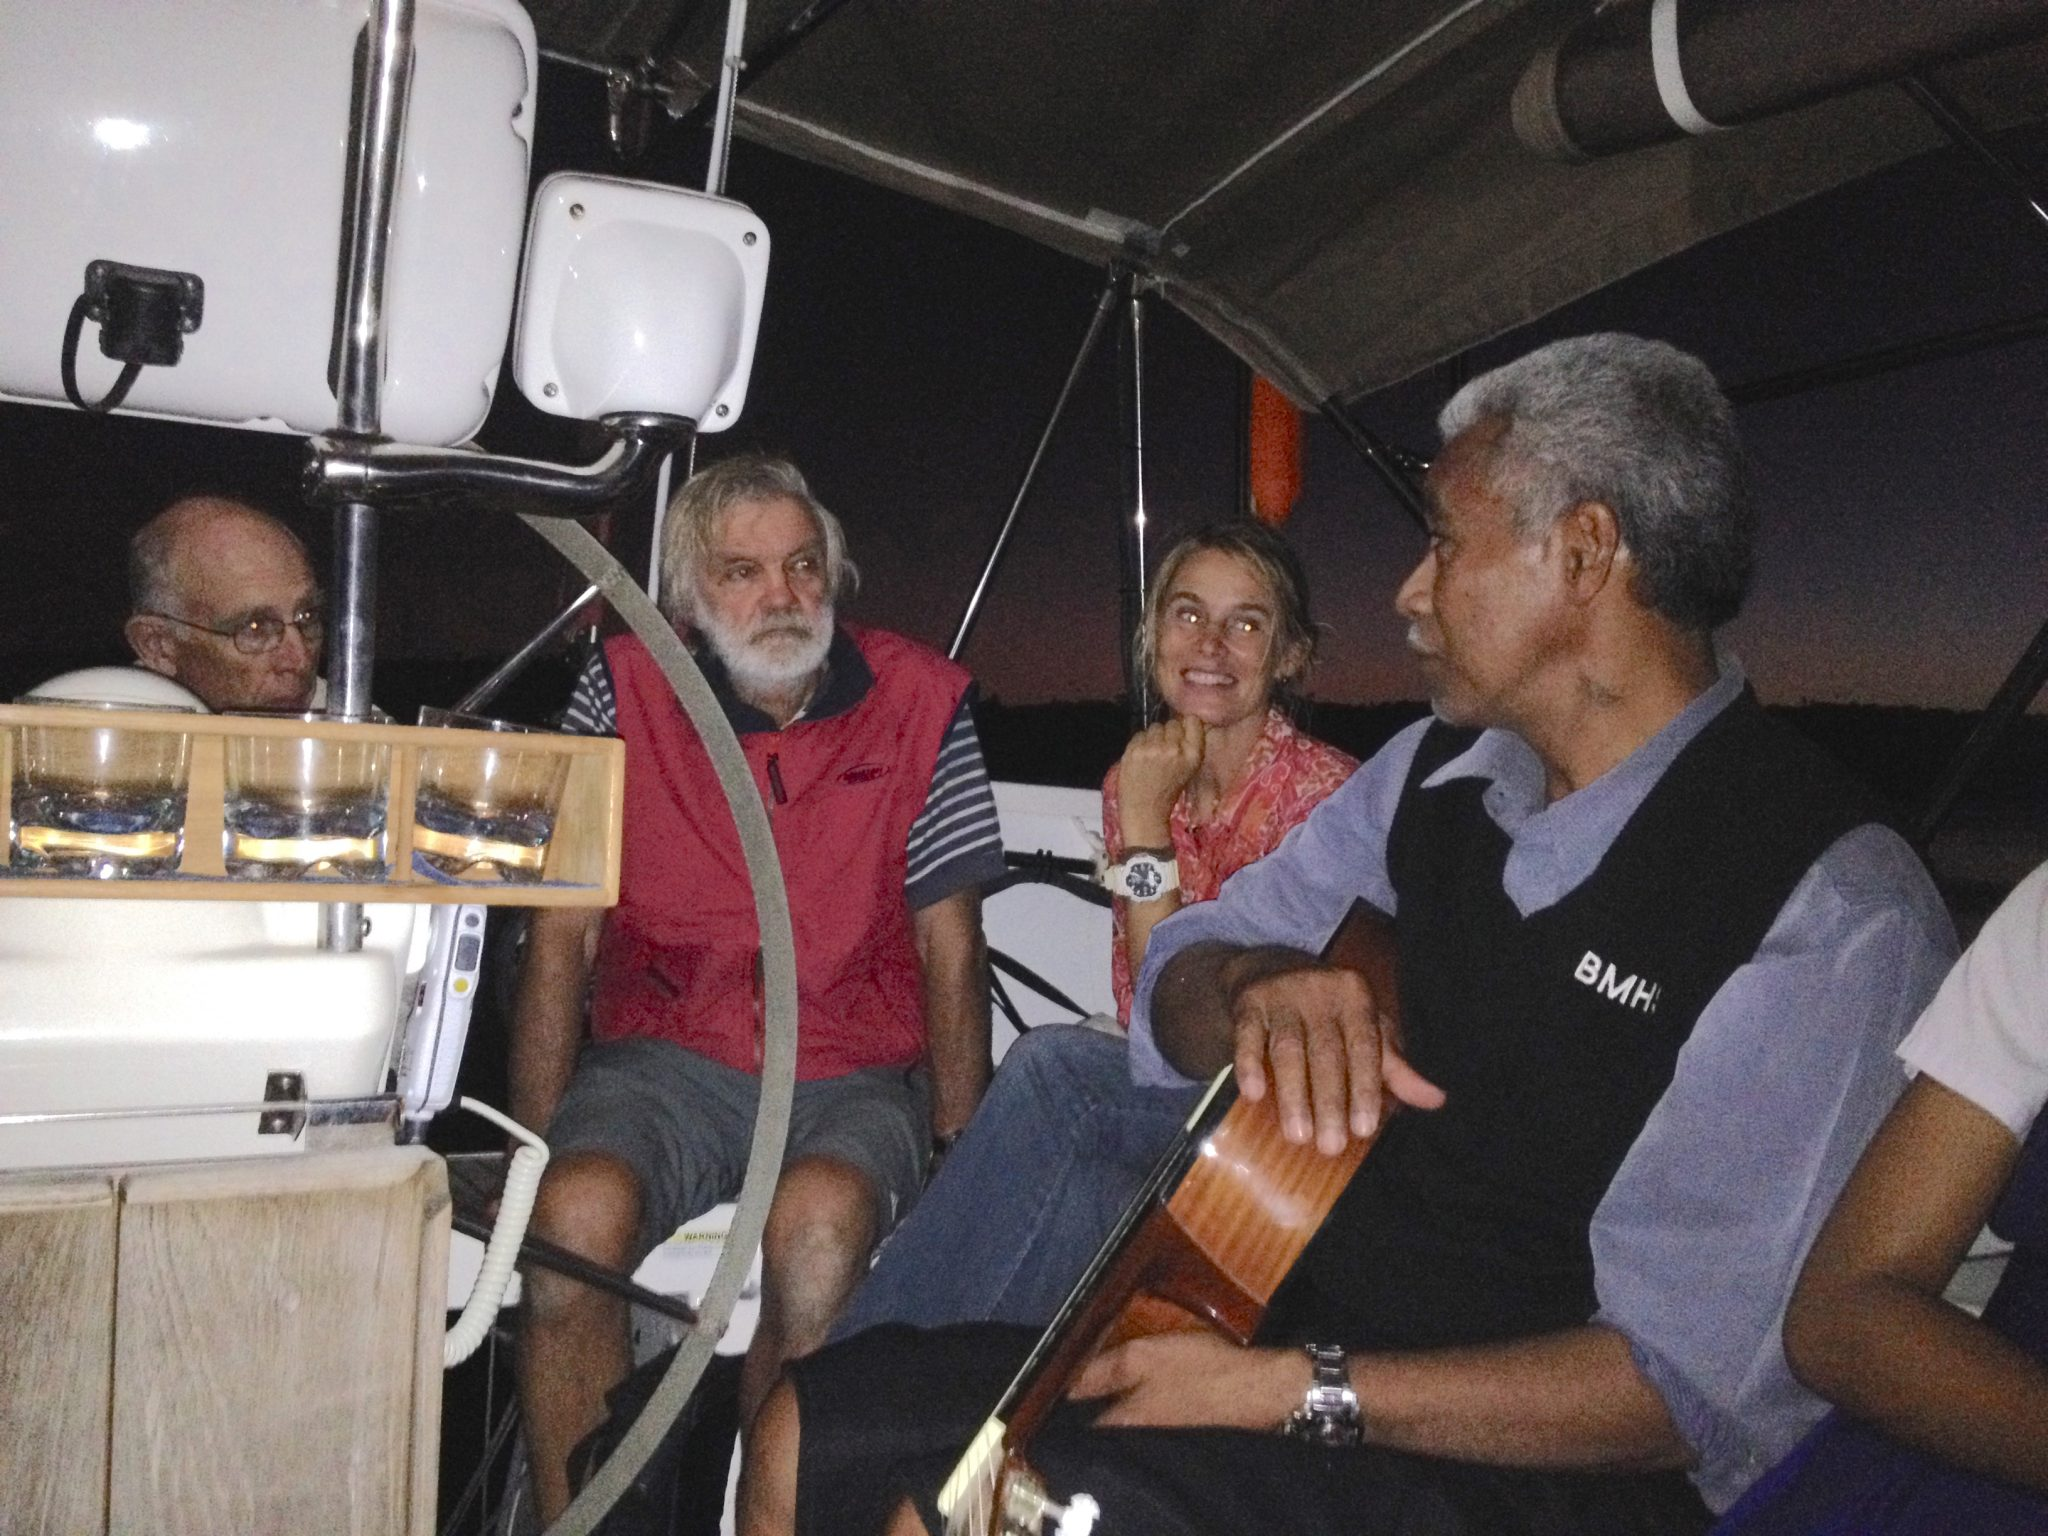 163. From left to right - Jeff, sailing missionaries Phil and Beatrice, Tongan Soakai discuss life on Tonga